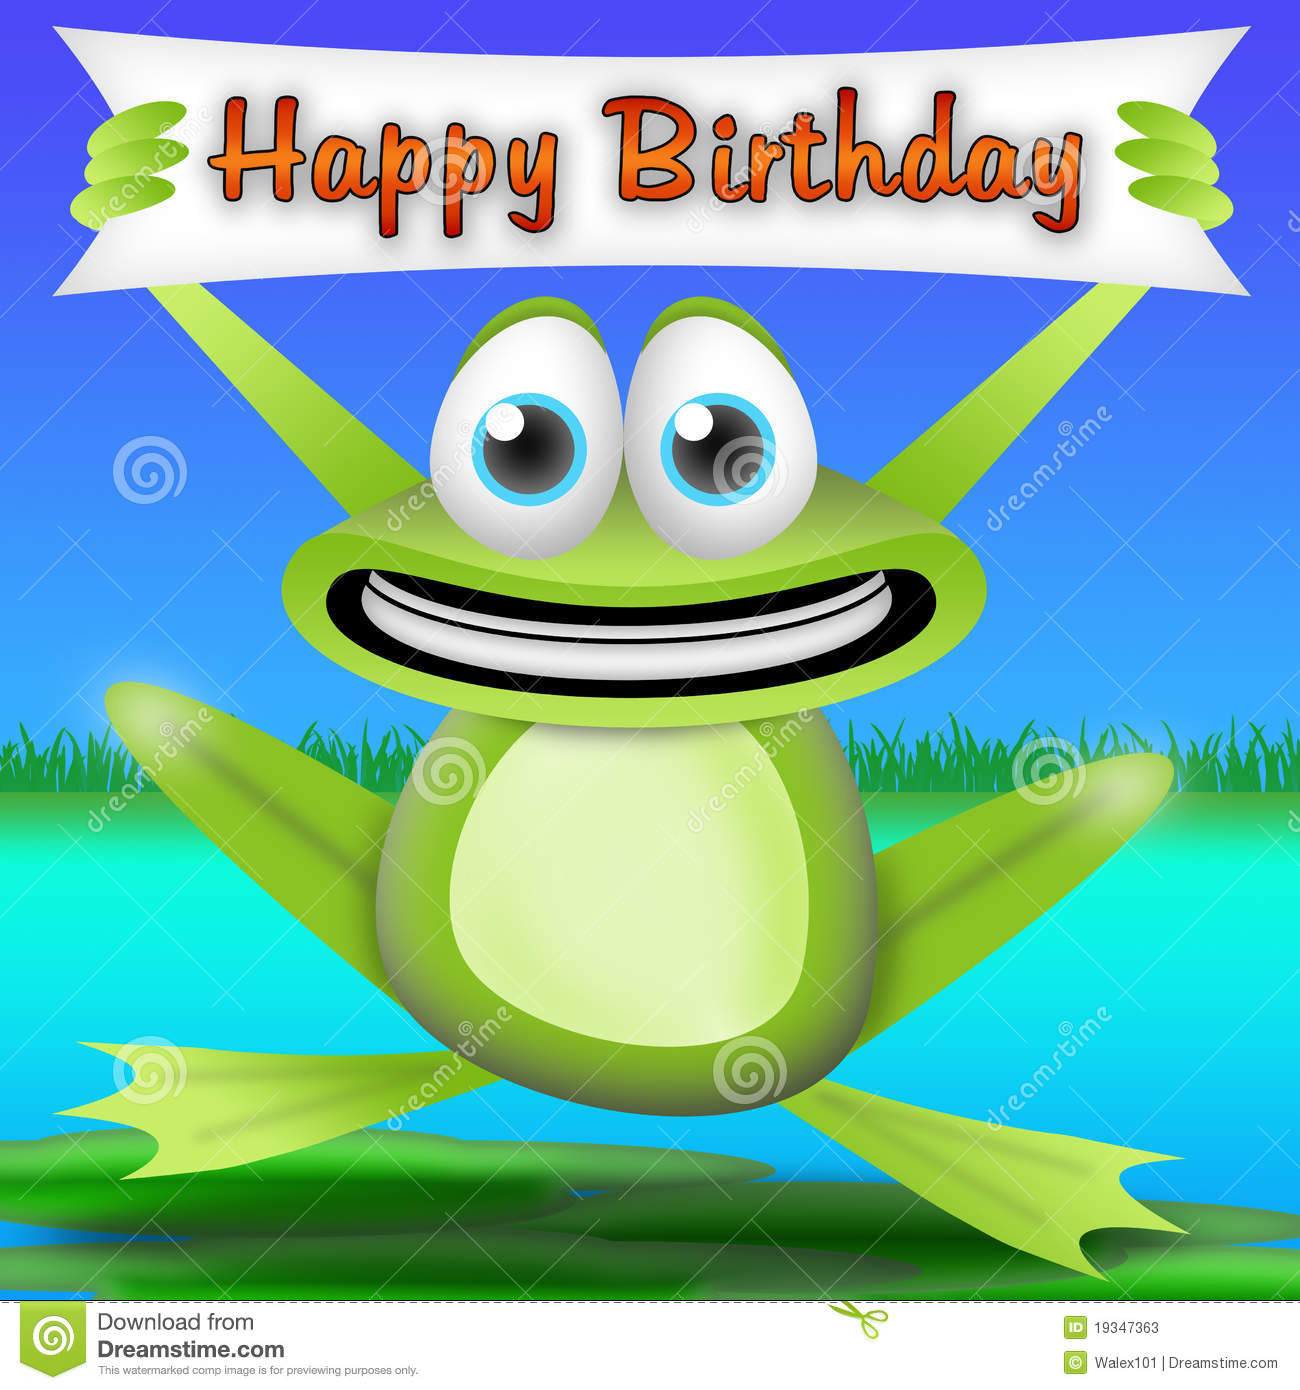 Cartoon frog with a happy birthday banner. greeting card for kids.